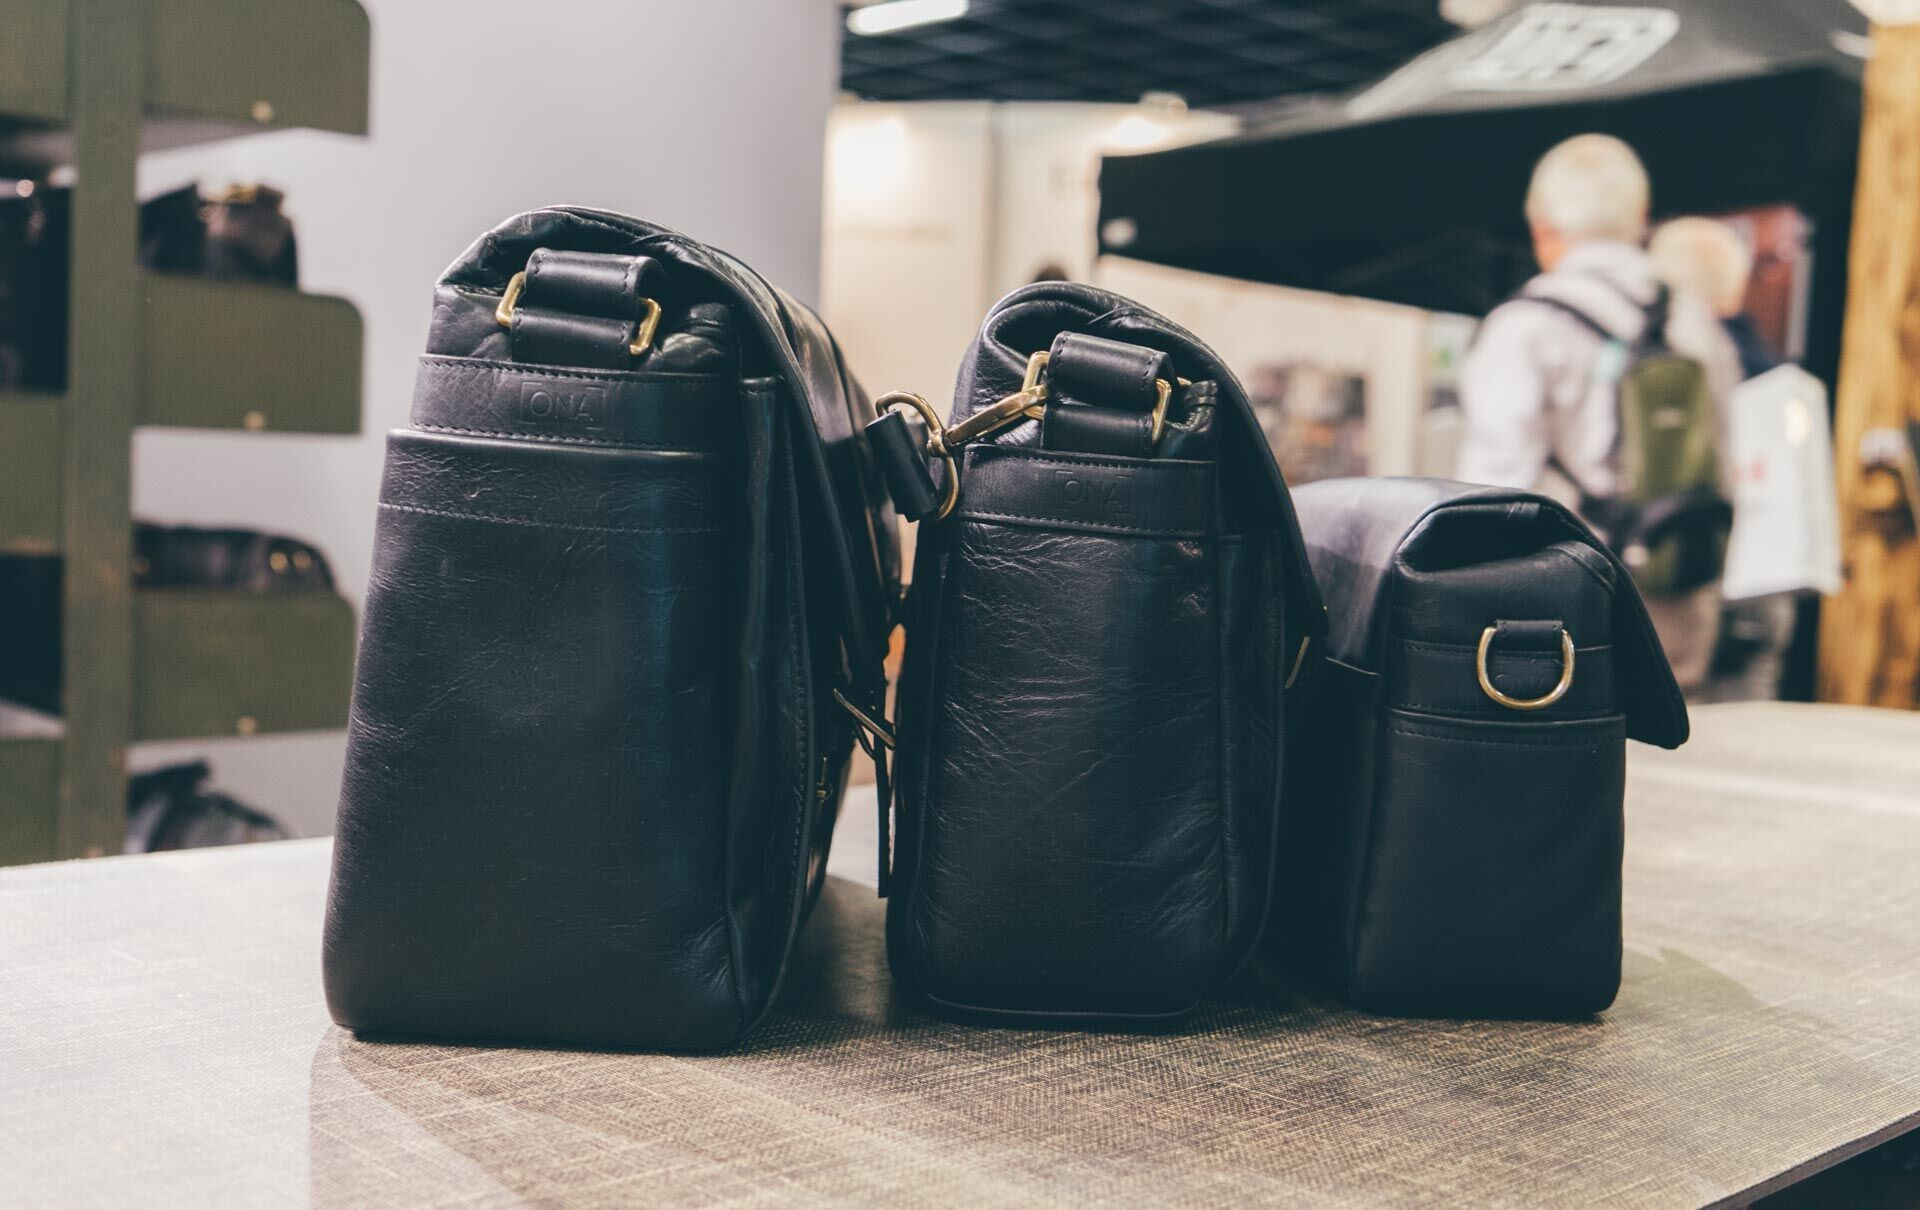 If you wanted a black leather ONA bag, the [Berlin II](https://www.amazon.com/gp/product/B00XWKRIWI/ref=as_li_qf_sp_asin_il_tl?linkId=f6f95de678b7cc81c73c34d5155b3438&linkCode=as2&creativeASIN=B00XWKRIWI&creative=9325&tag=toolsandtoys-20&camp=1789&ie=UTF8) used to be your only choice. No more.